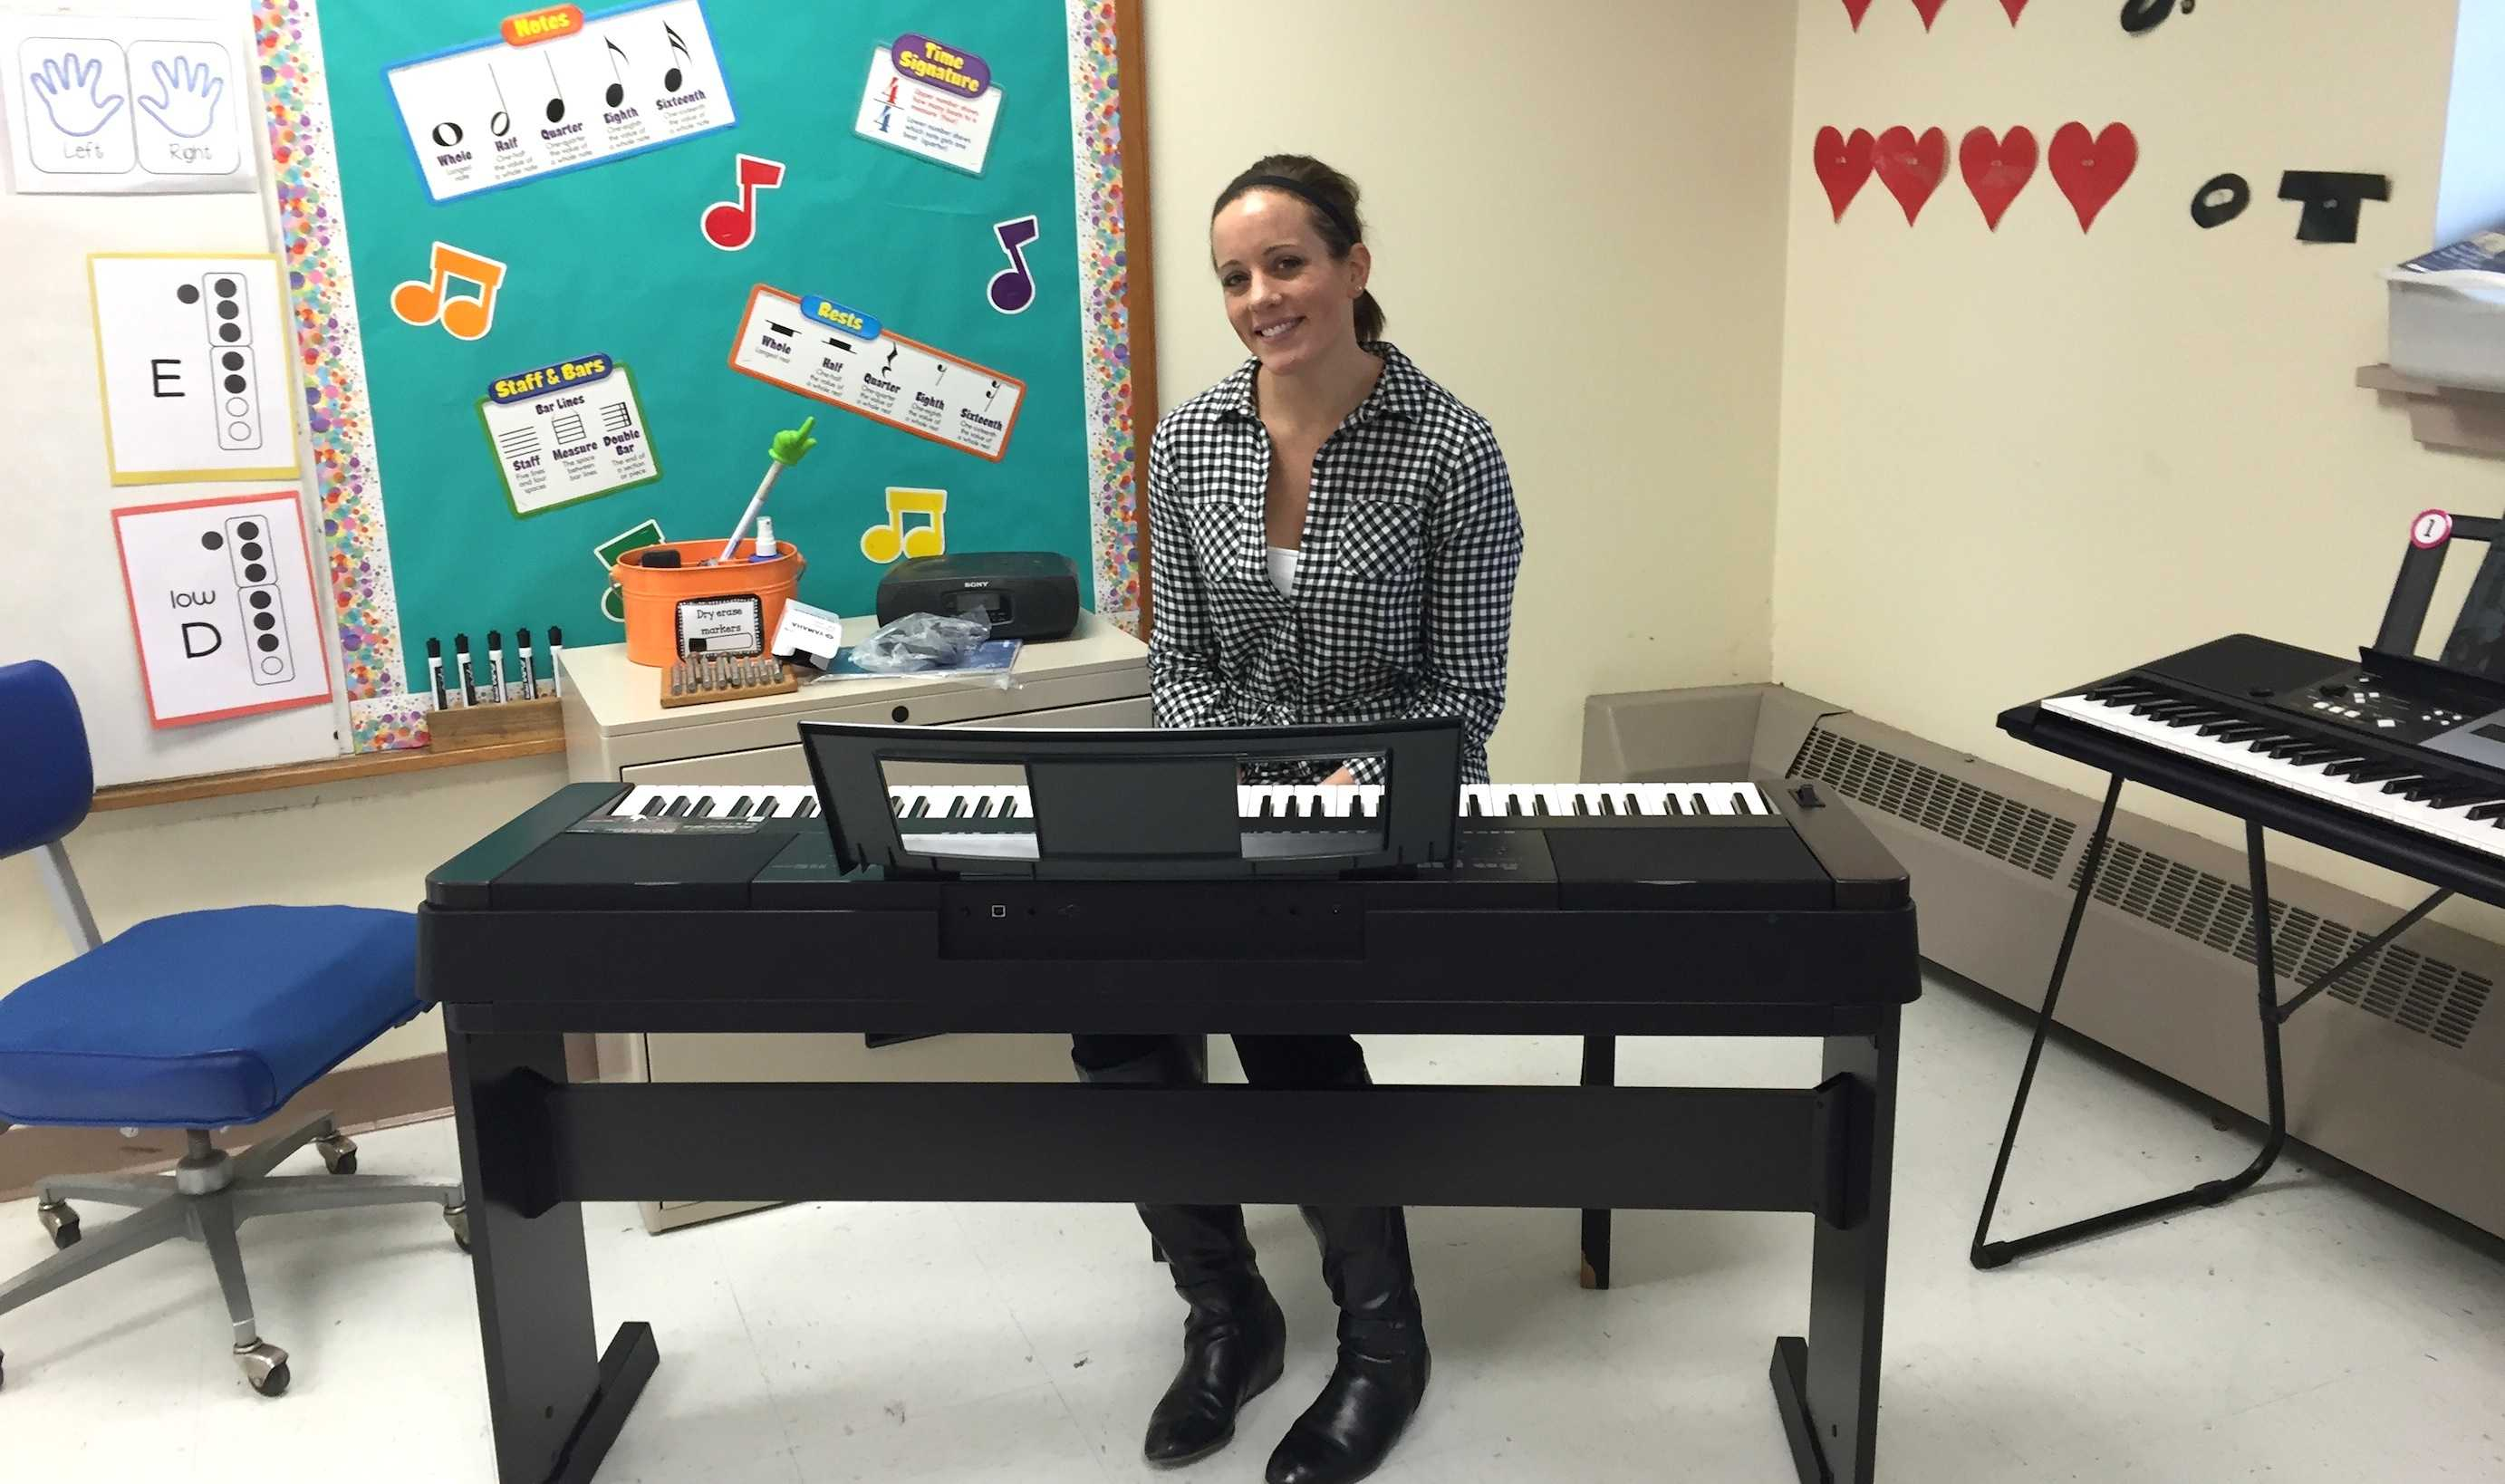 Sara Patashnick -- who teaches music at Hosmer Elementary School in Watertown -- poses with some of the instruments purchased with the recent grant from Music Drives Us.